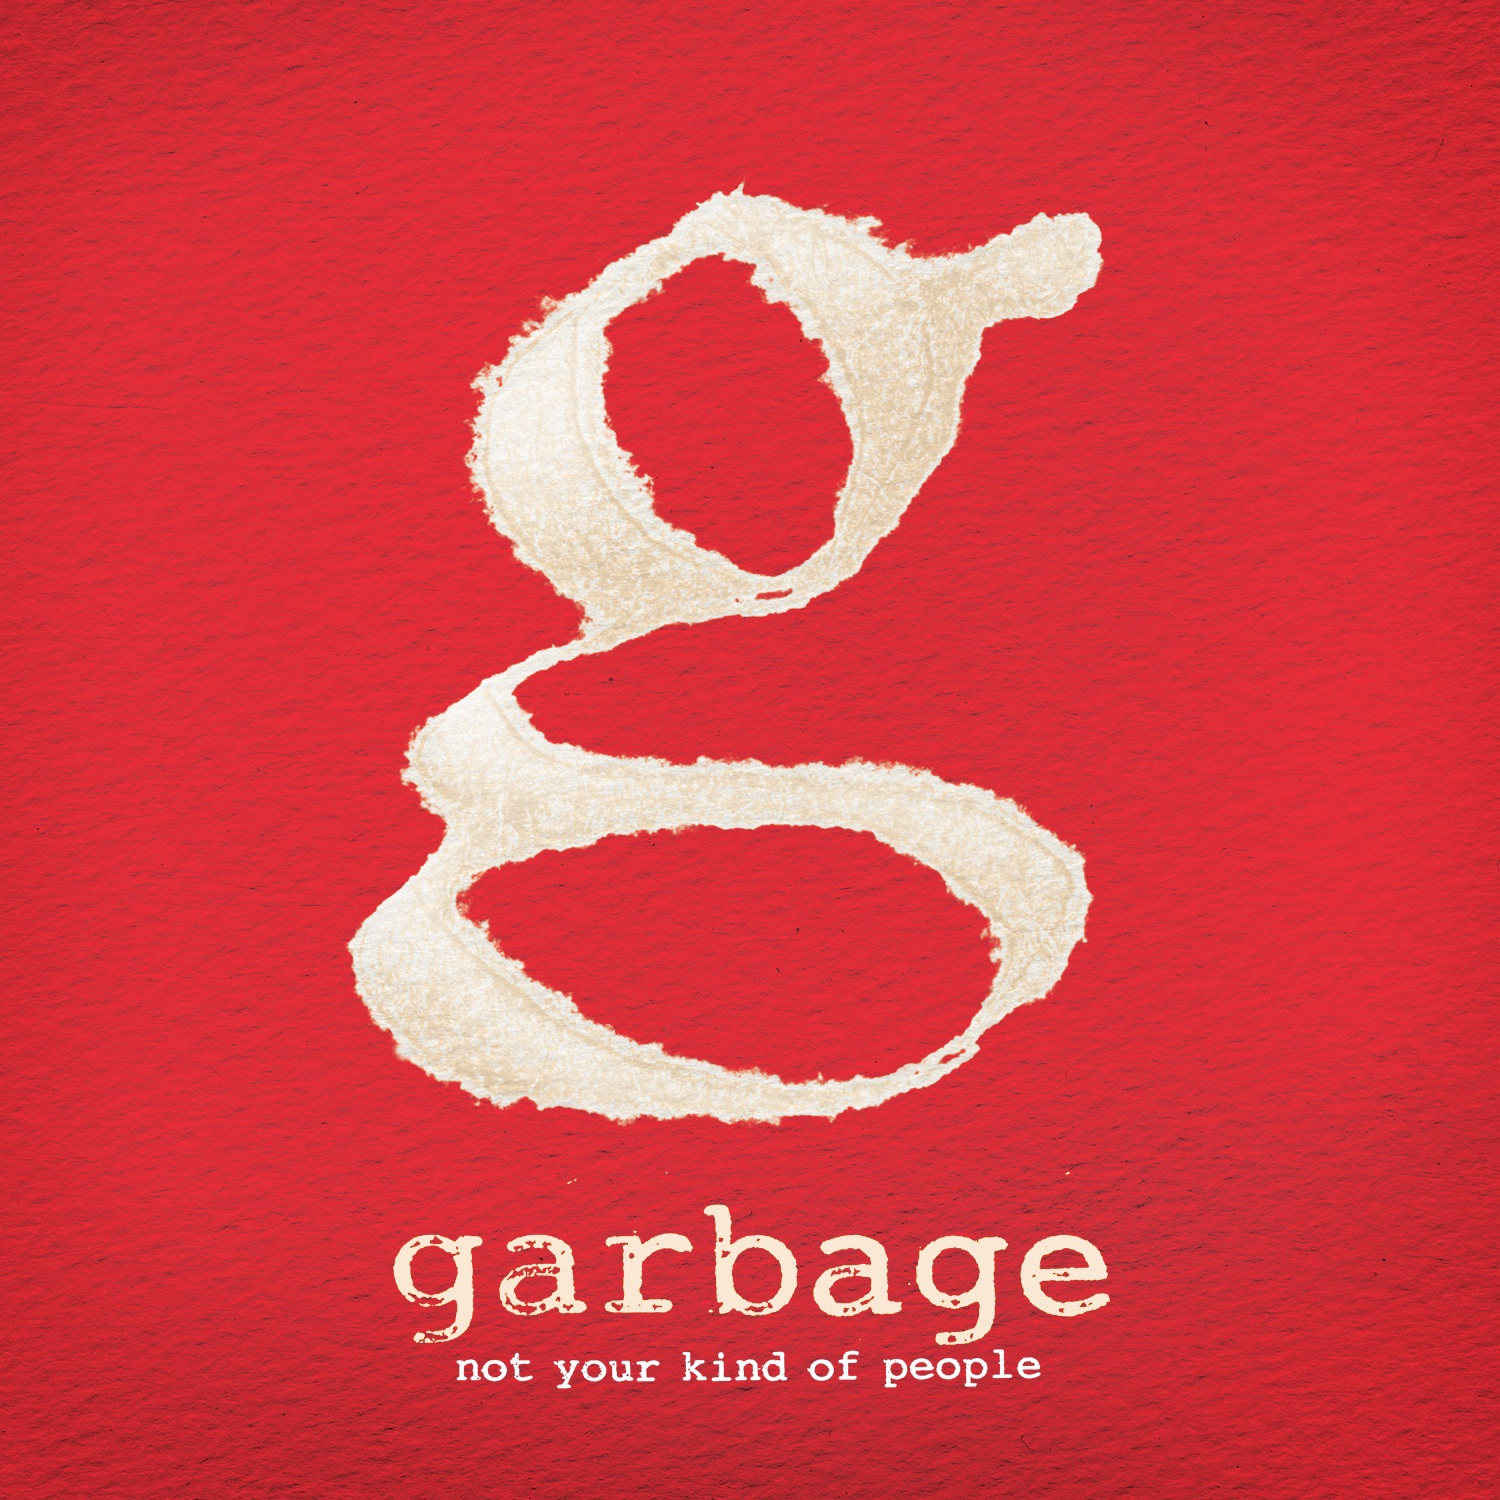 Garbage album Not Your Kind of People (Deluxe Version)